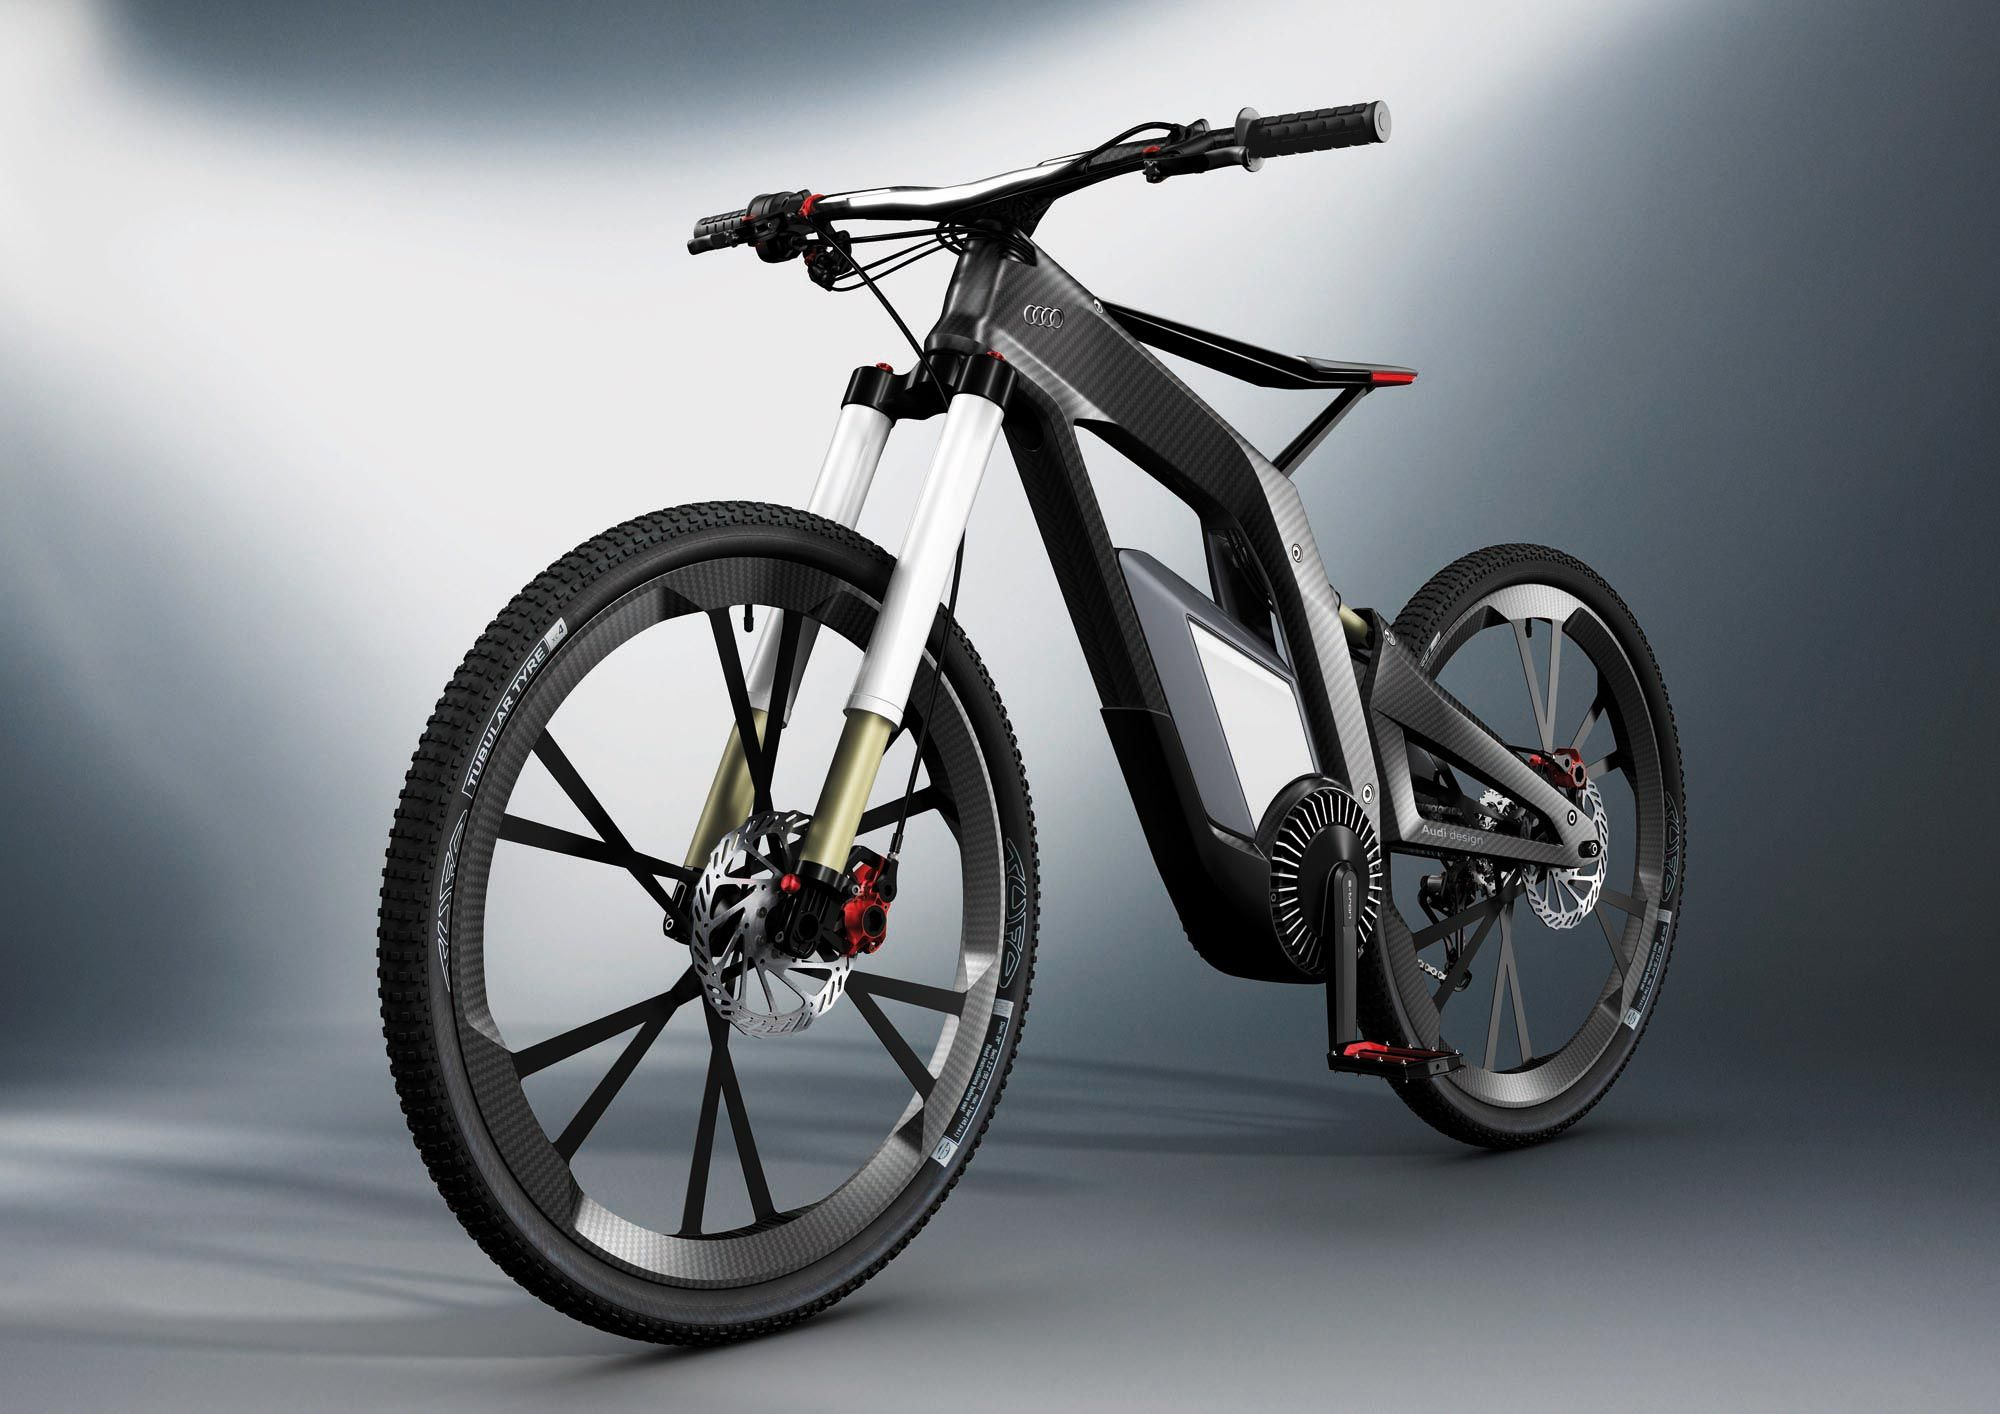 1000+ images about E-BIKE on Pinterest | Logos, Bikes and Festivals